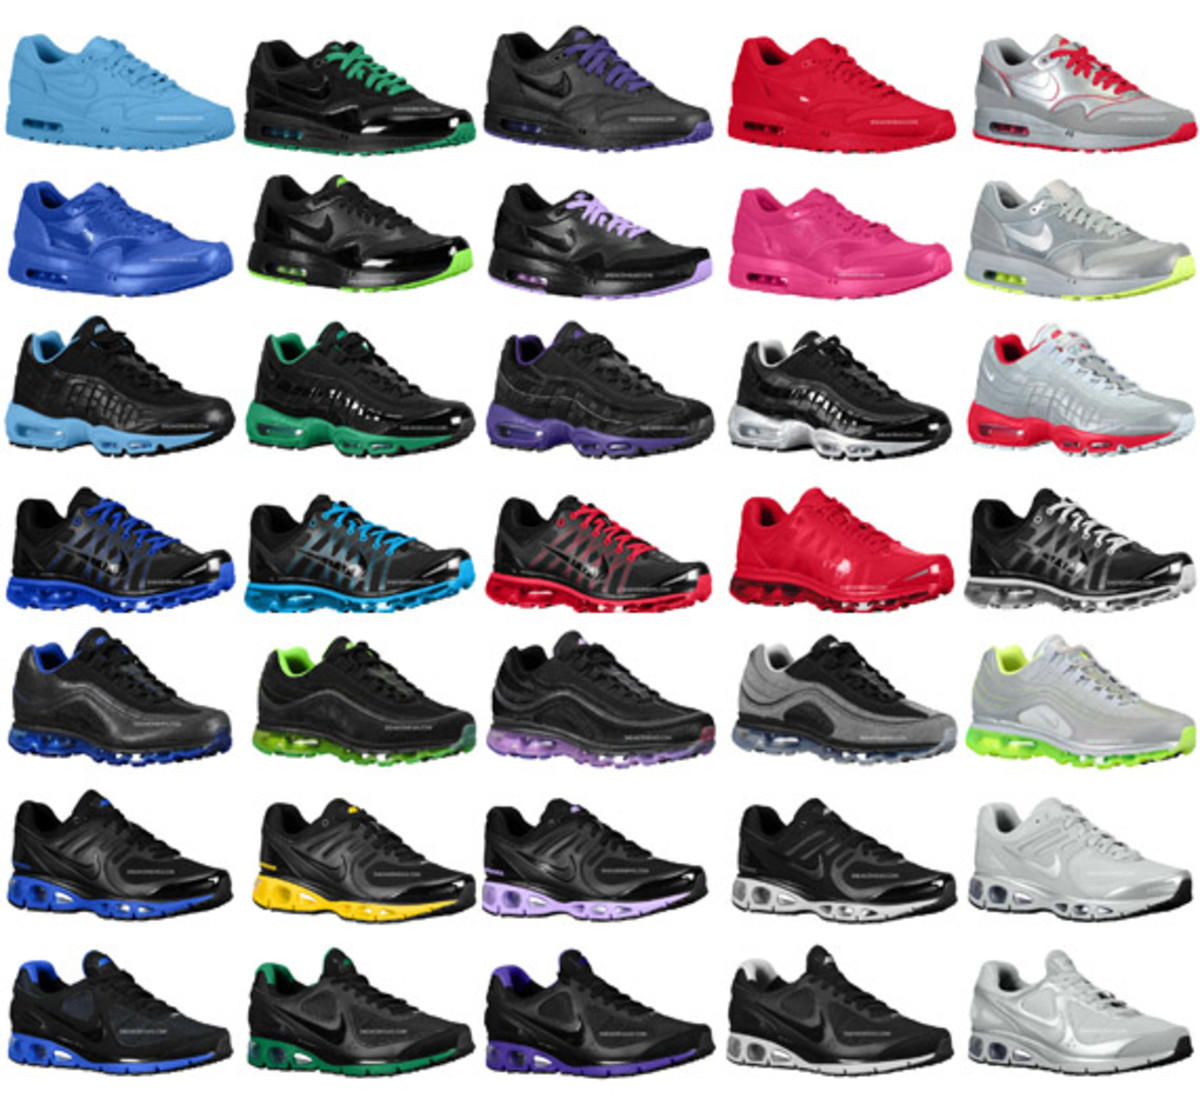 freshness-weekly-review-nike-air-attack-1